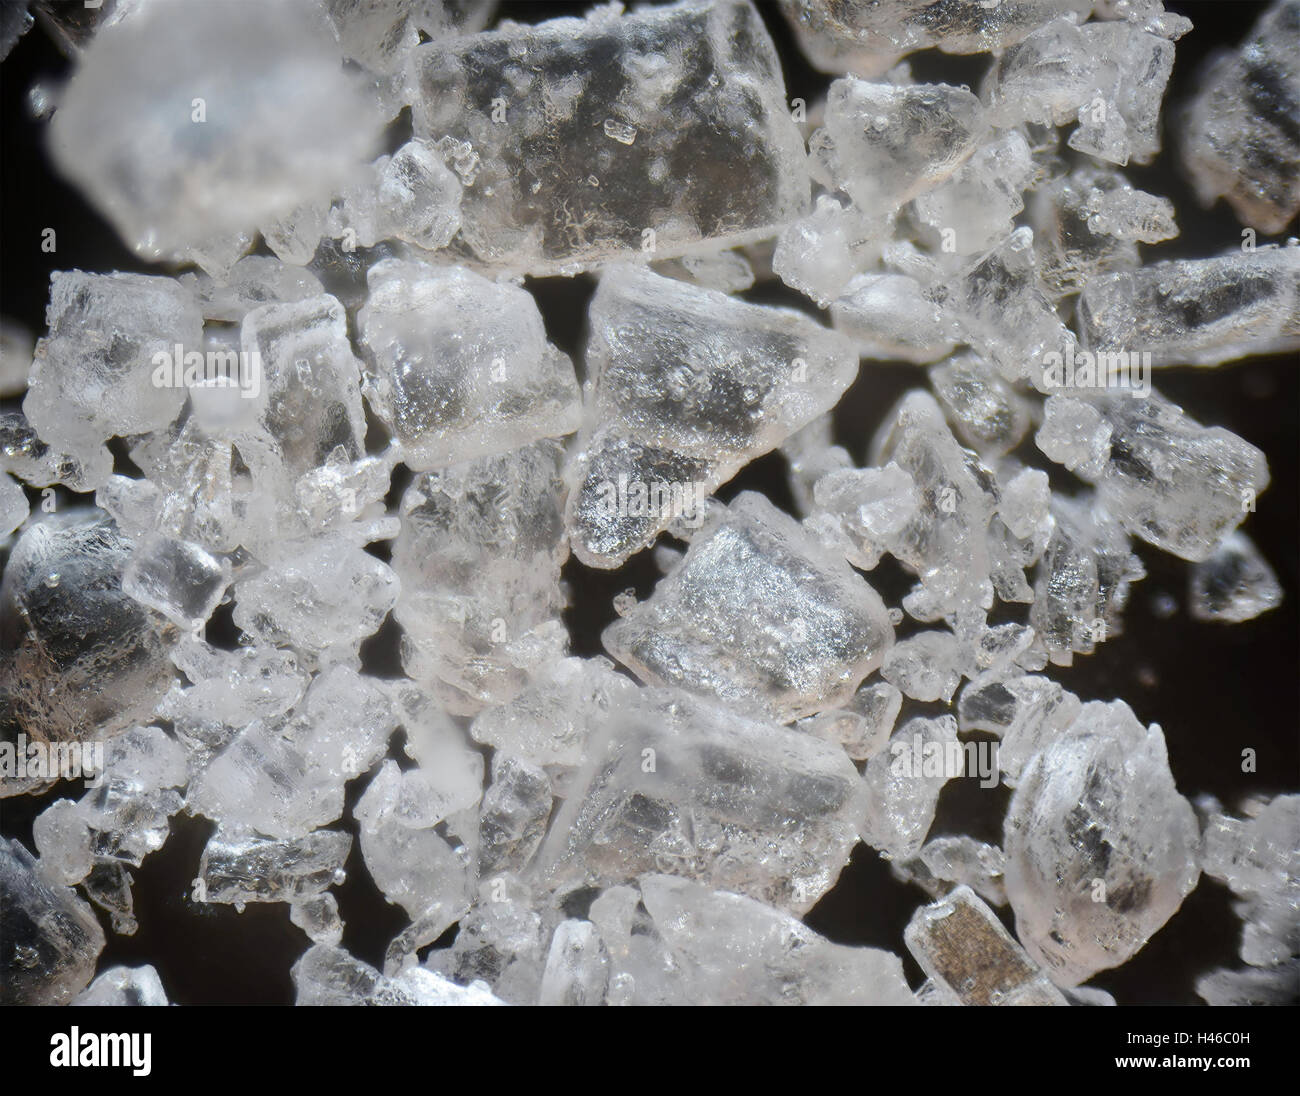 Microscopic photography of salt - Stock Image